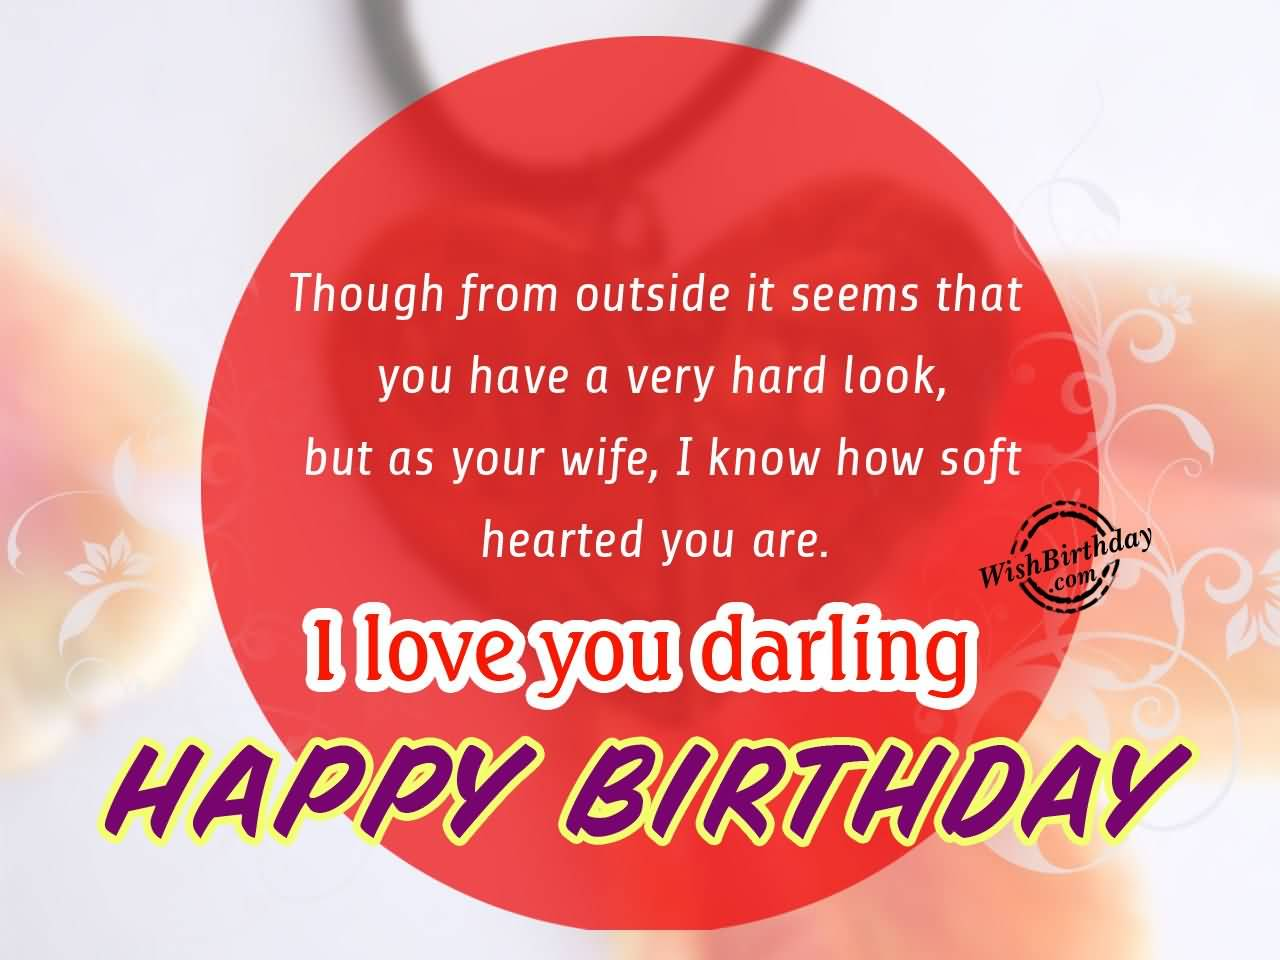 Happy Birthday Wishes For Husband Images Free Download Though From Outside It Seems